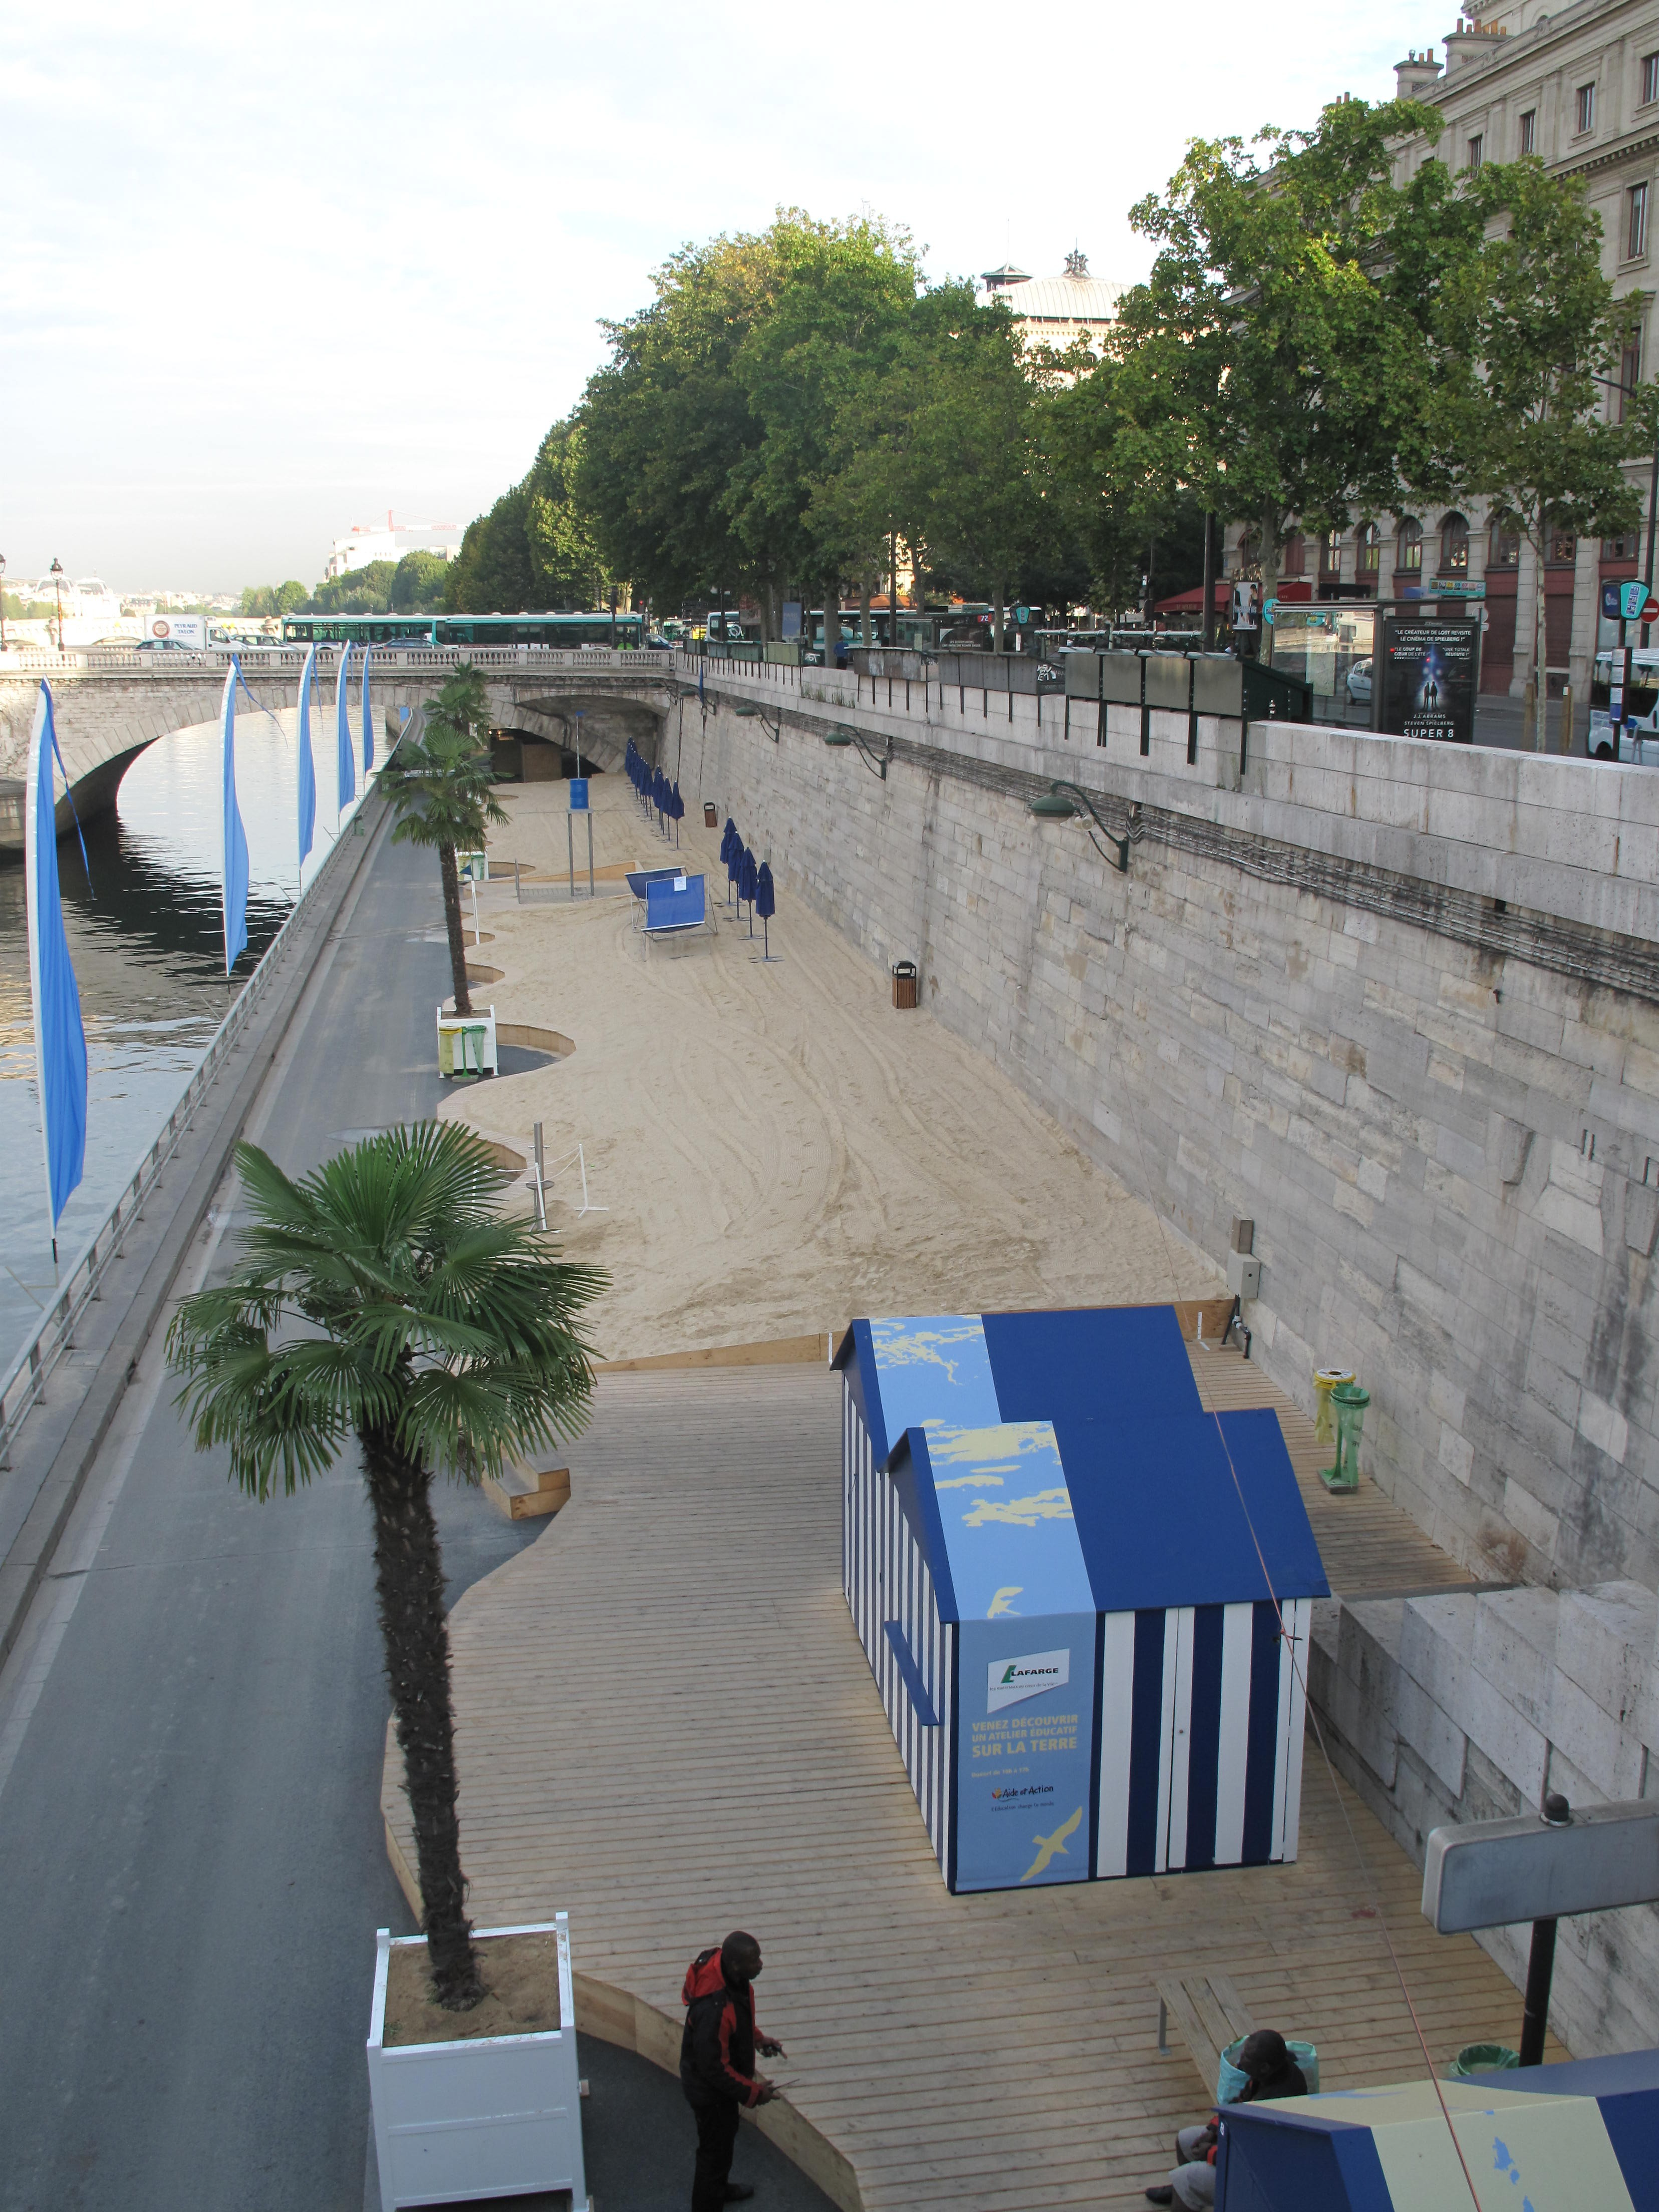 Paris Plages: July - August